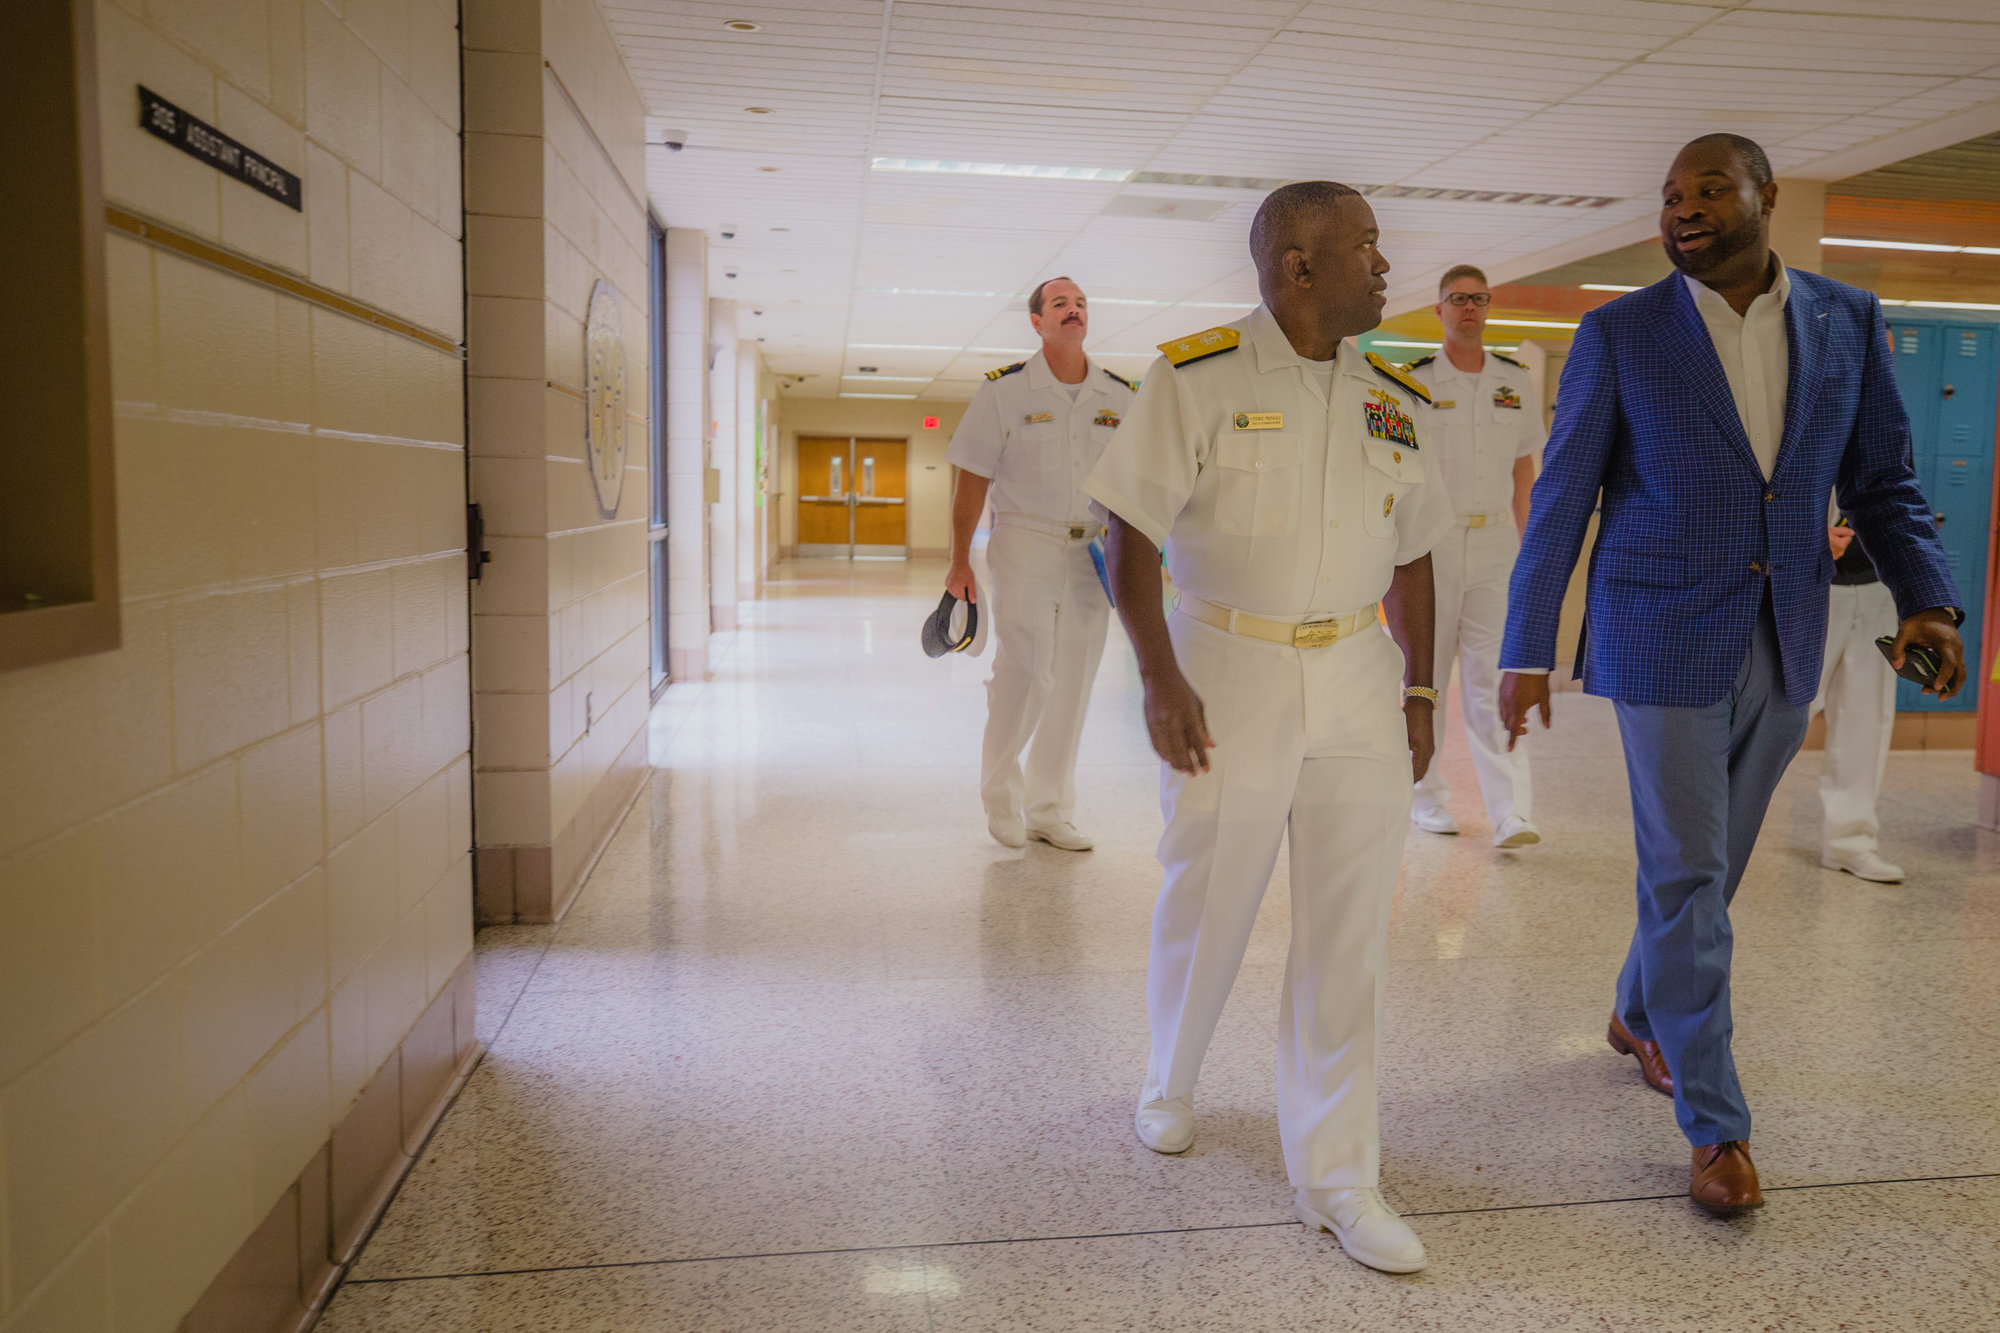 Rear Adm. Cedric Pringle walks through the halls of Sumter High School with Principal Nicholas Pearson on Monday during his visit to Sumter.